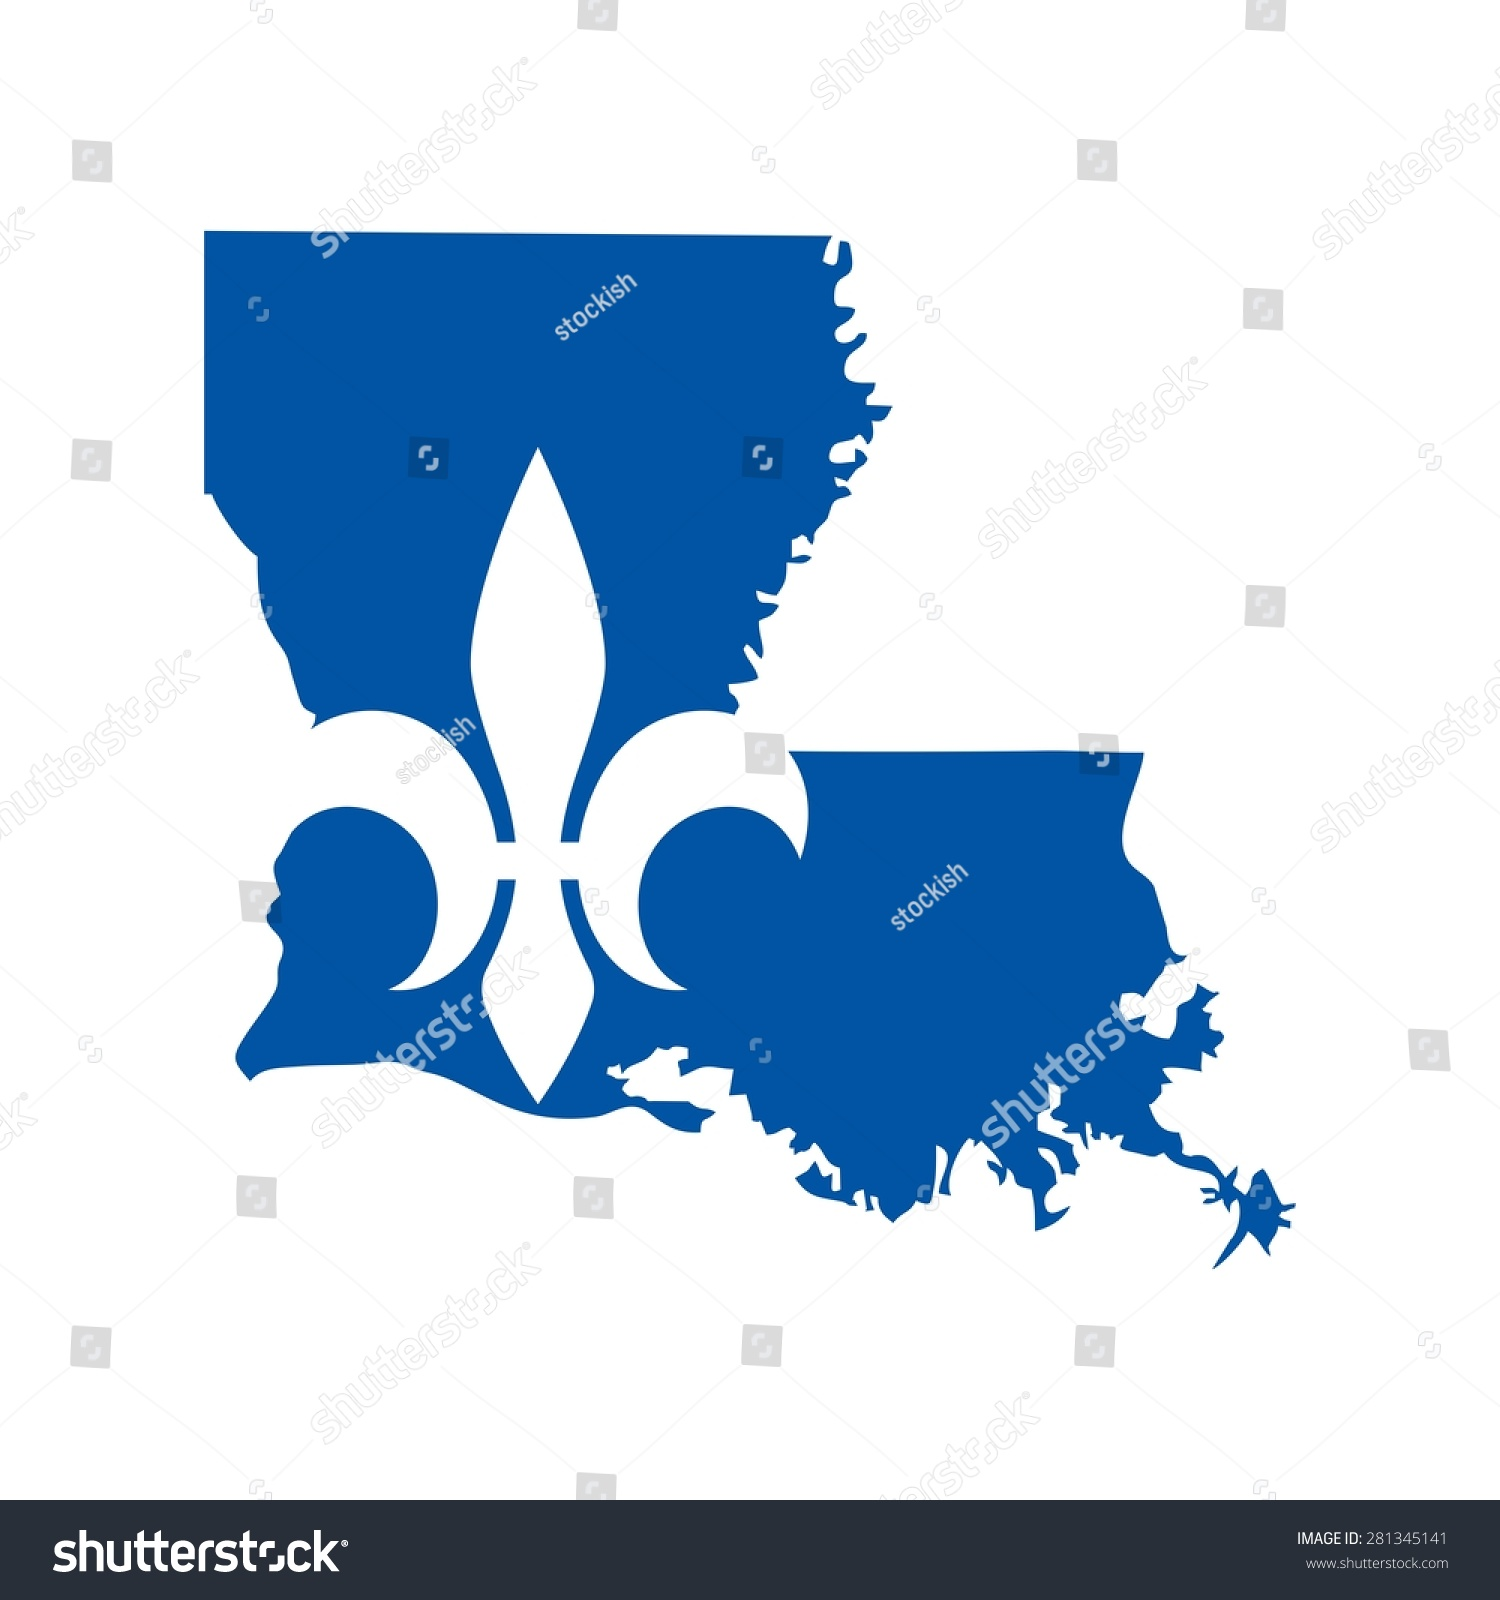 Louisiana office of alcohol and tobacco control for Louisiana id template